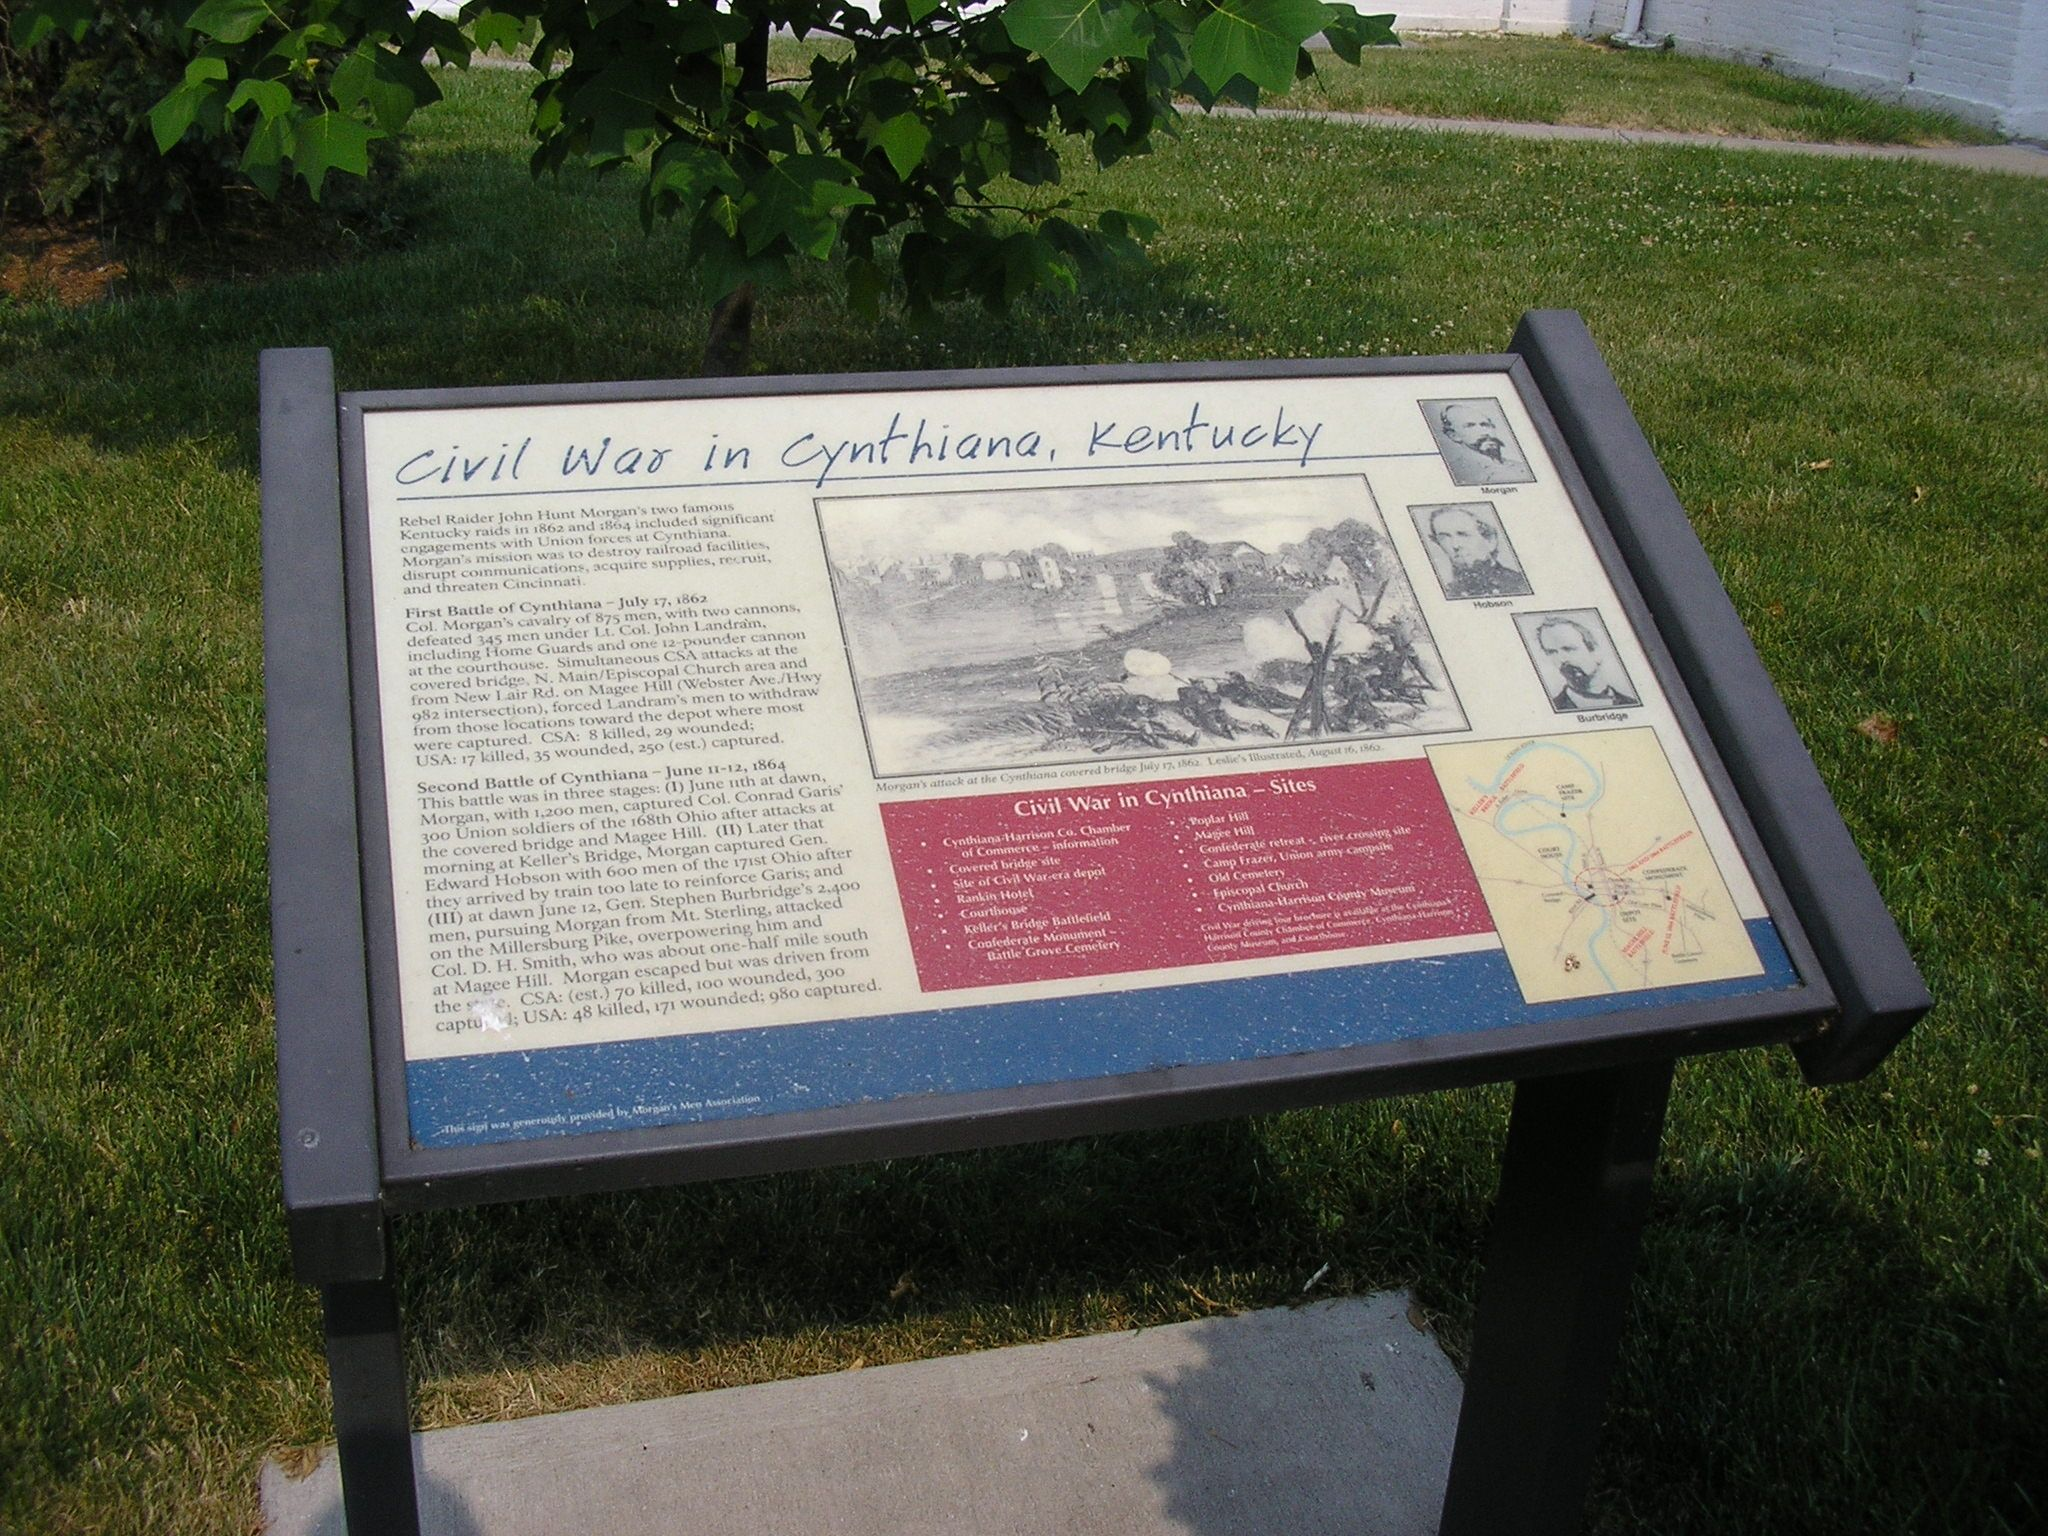 cynthiana guys The second battle of cynthiana included three separate engagements during the american civil war that were fought on june 11 and 12 about 300 men altogether.